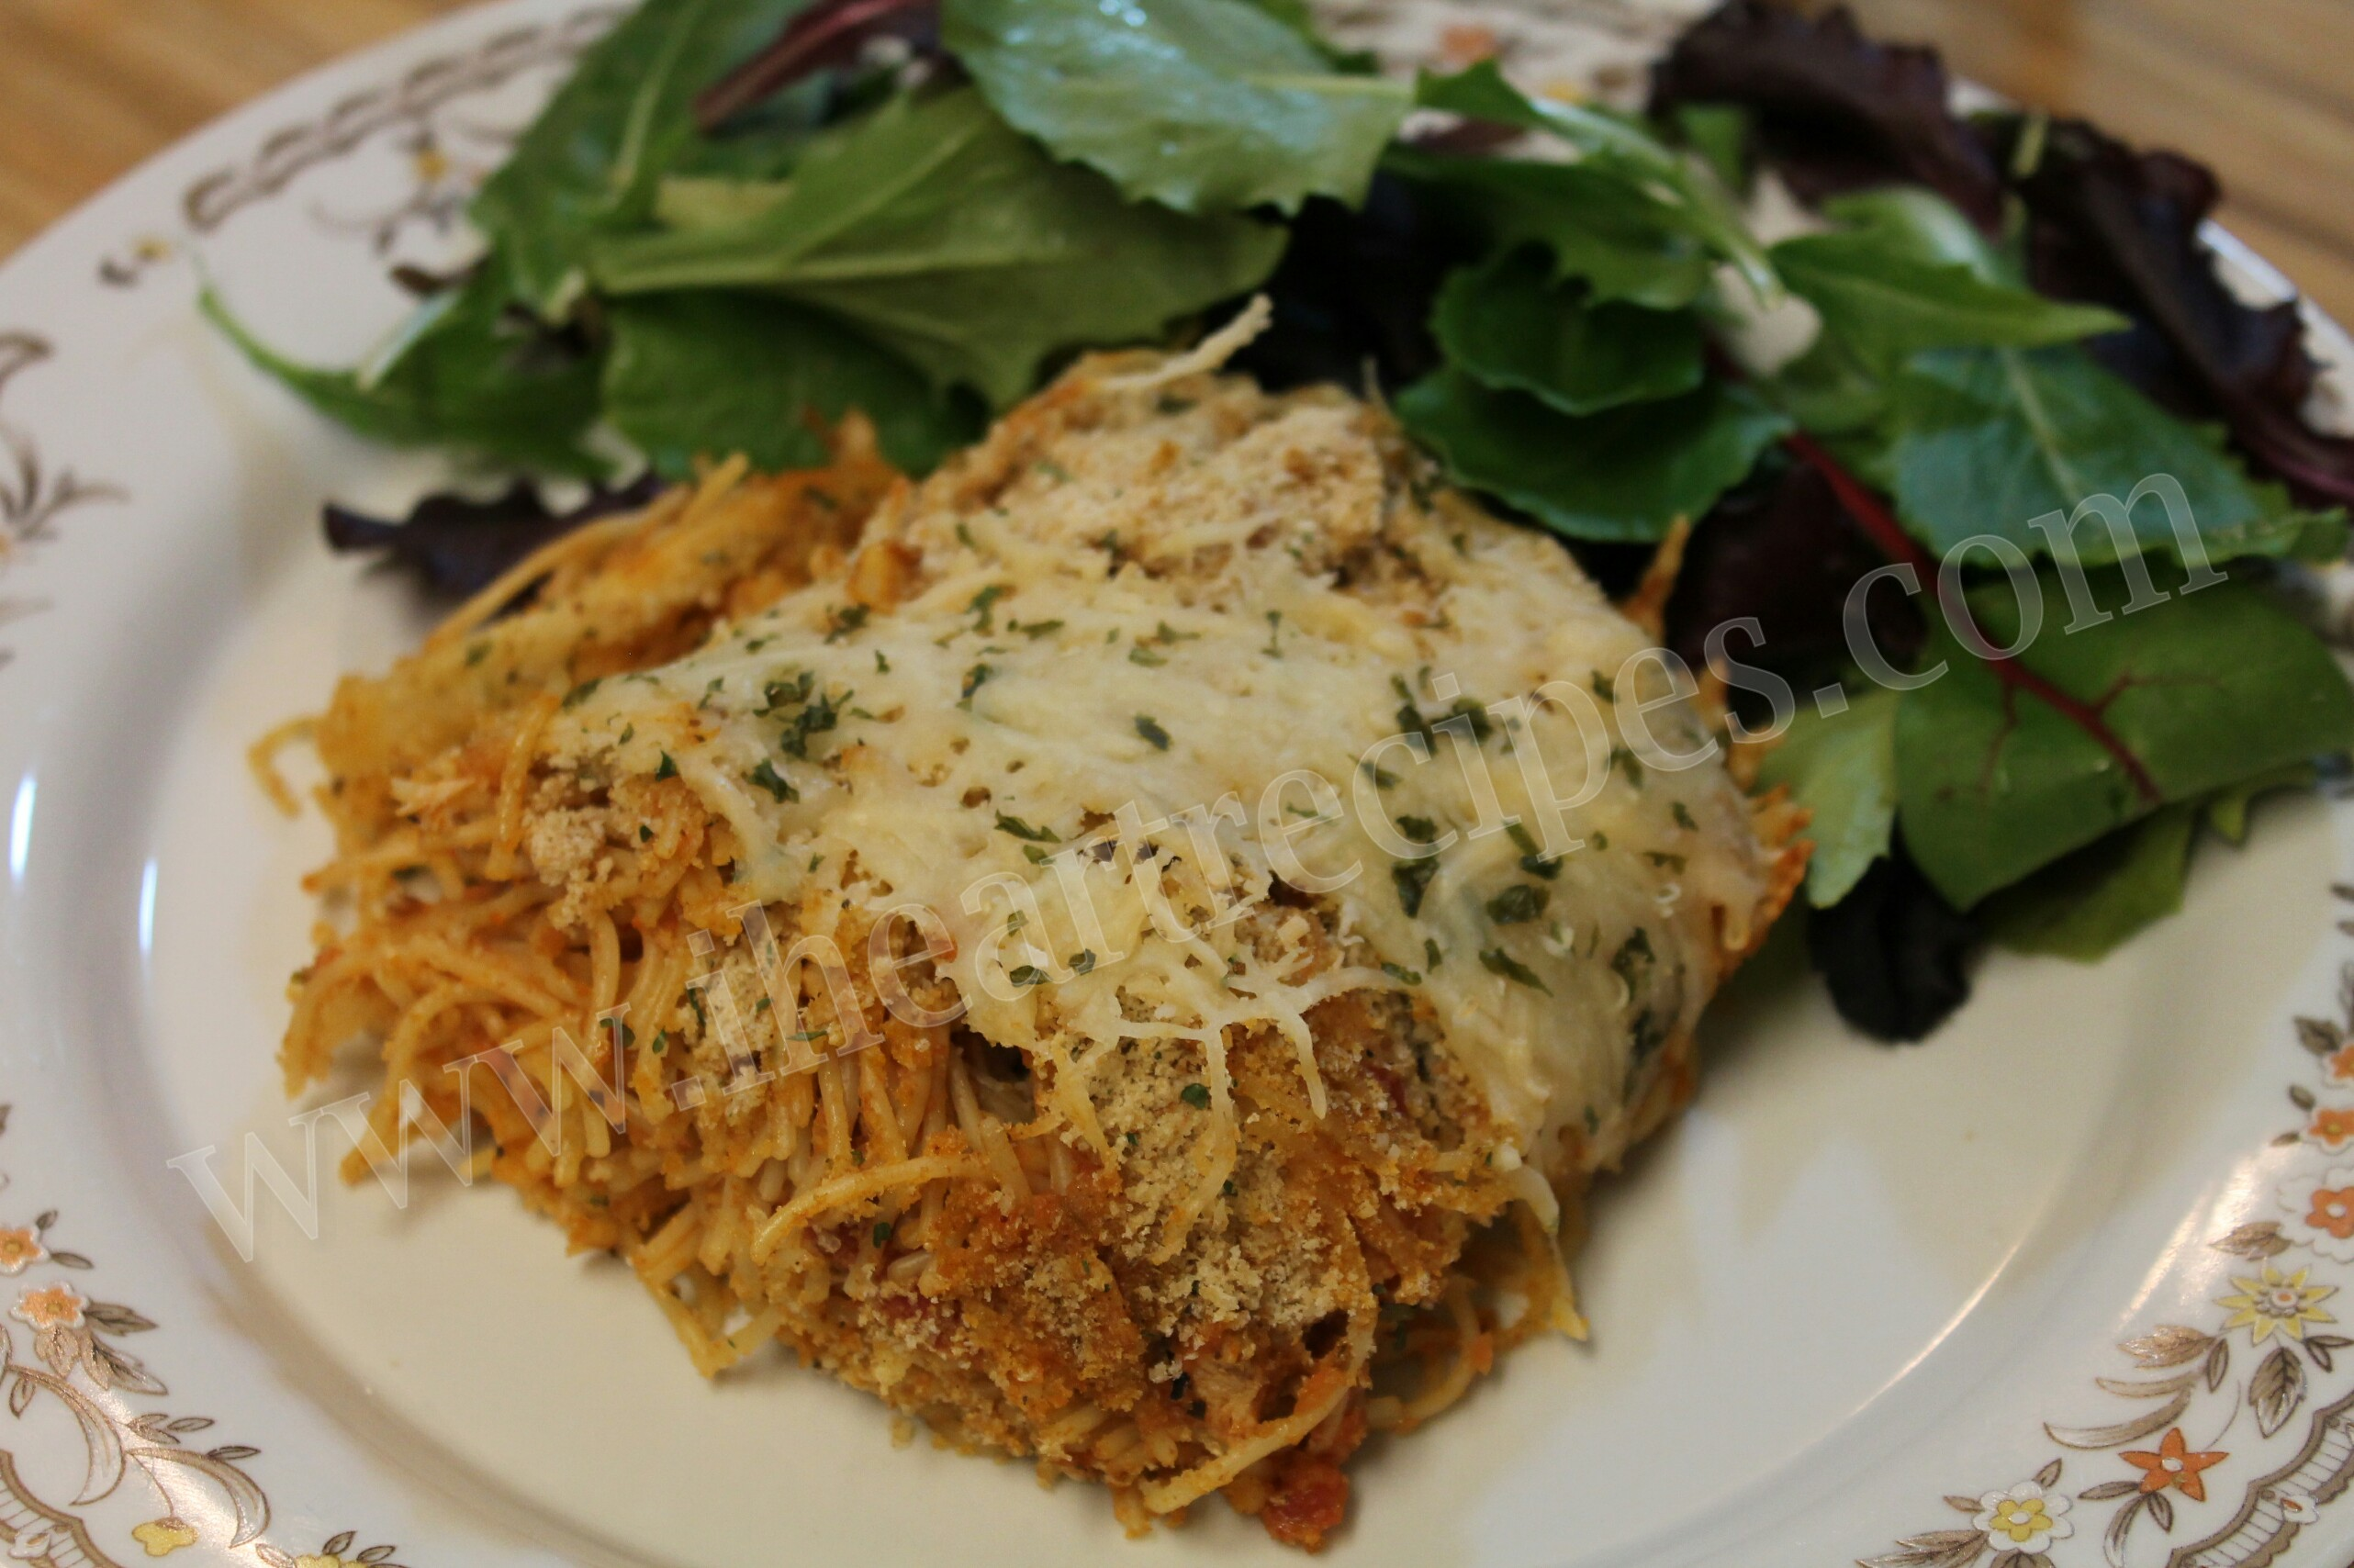 This cheesy and hearty chicken parmesan casserole dish can be served with a side salad or dinner rolls